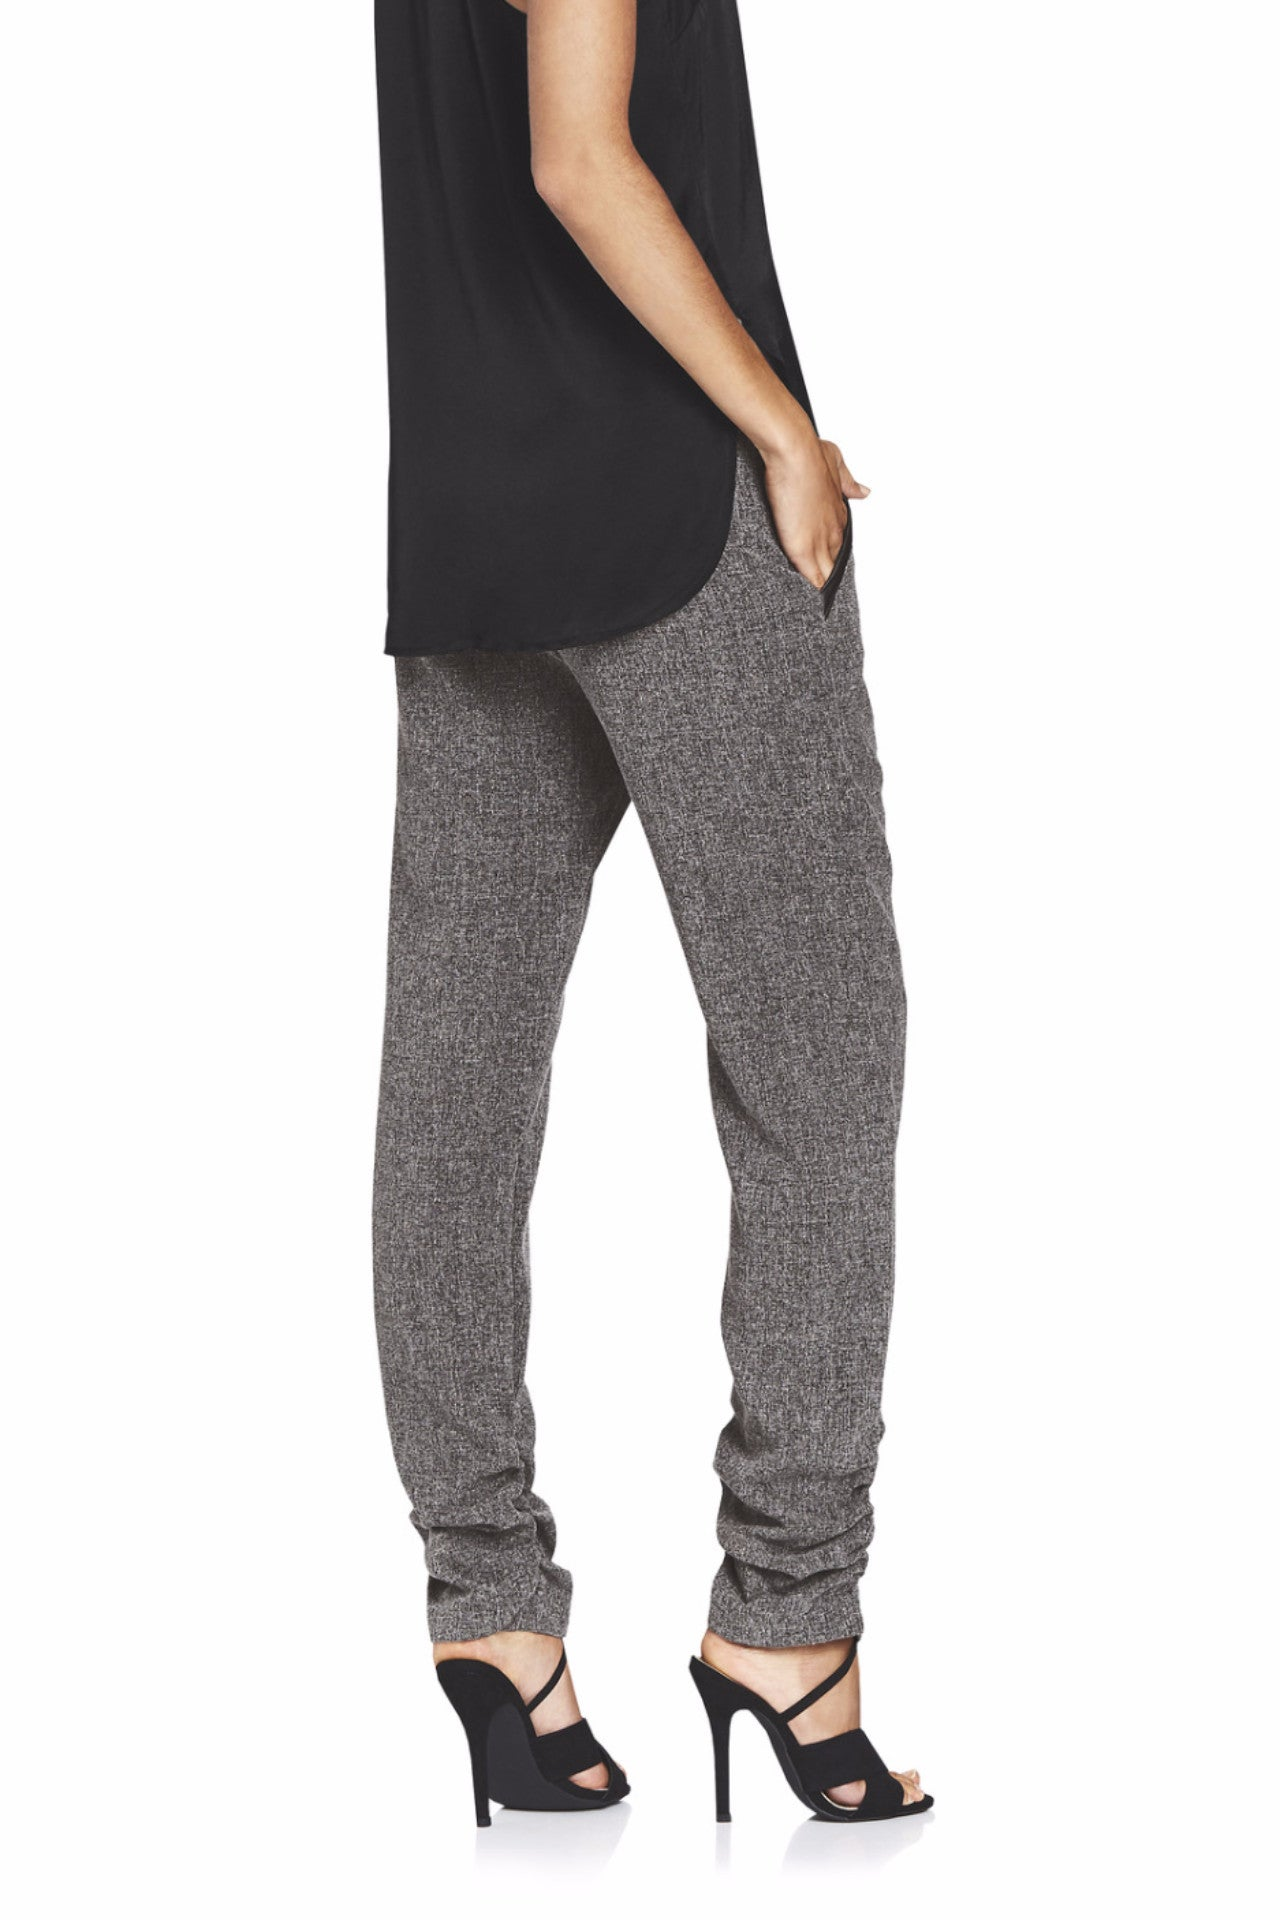 GEMINI PANTS  Pants & leggings - Majestee Clothing